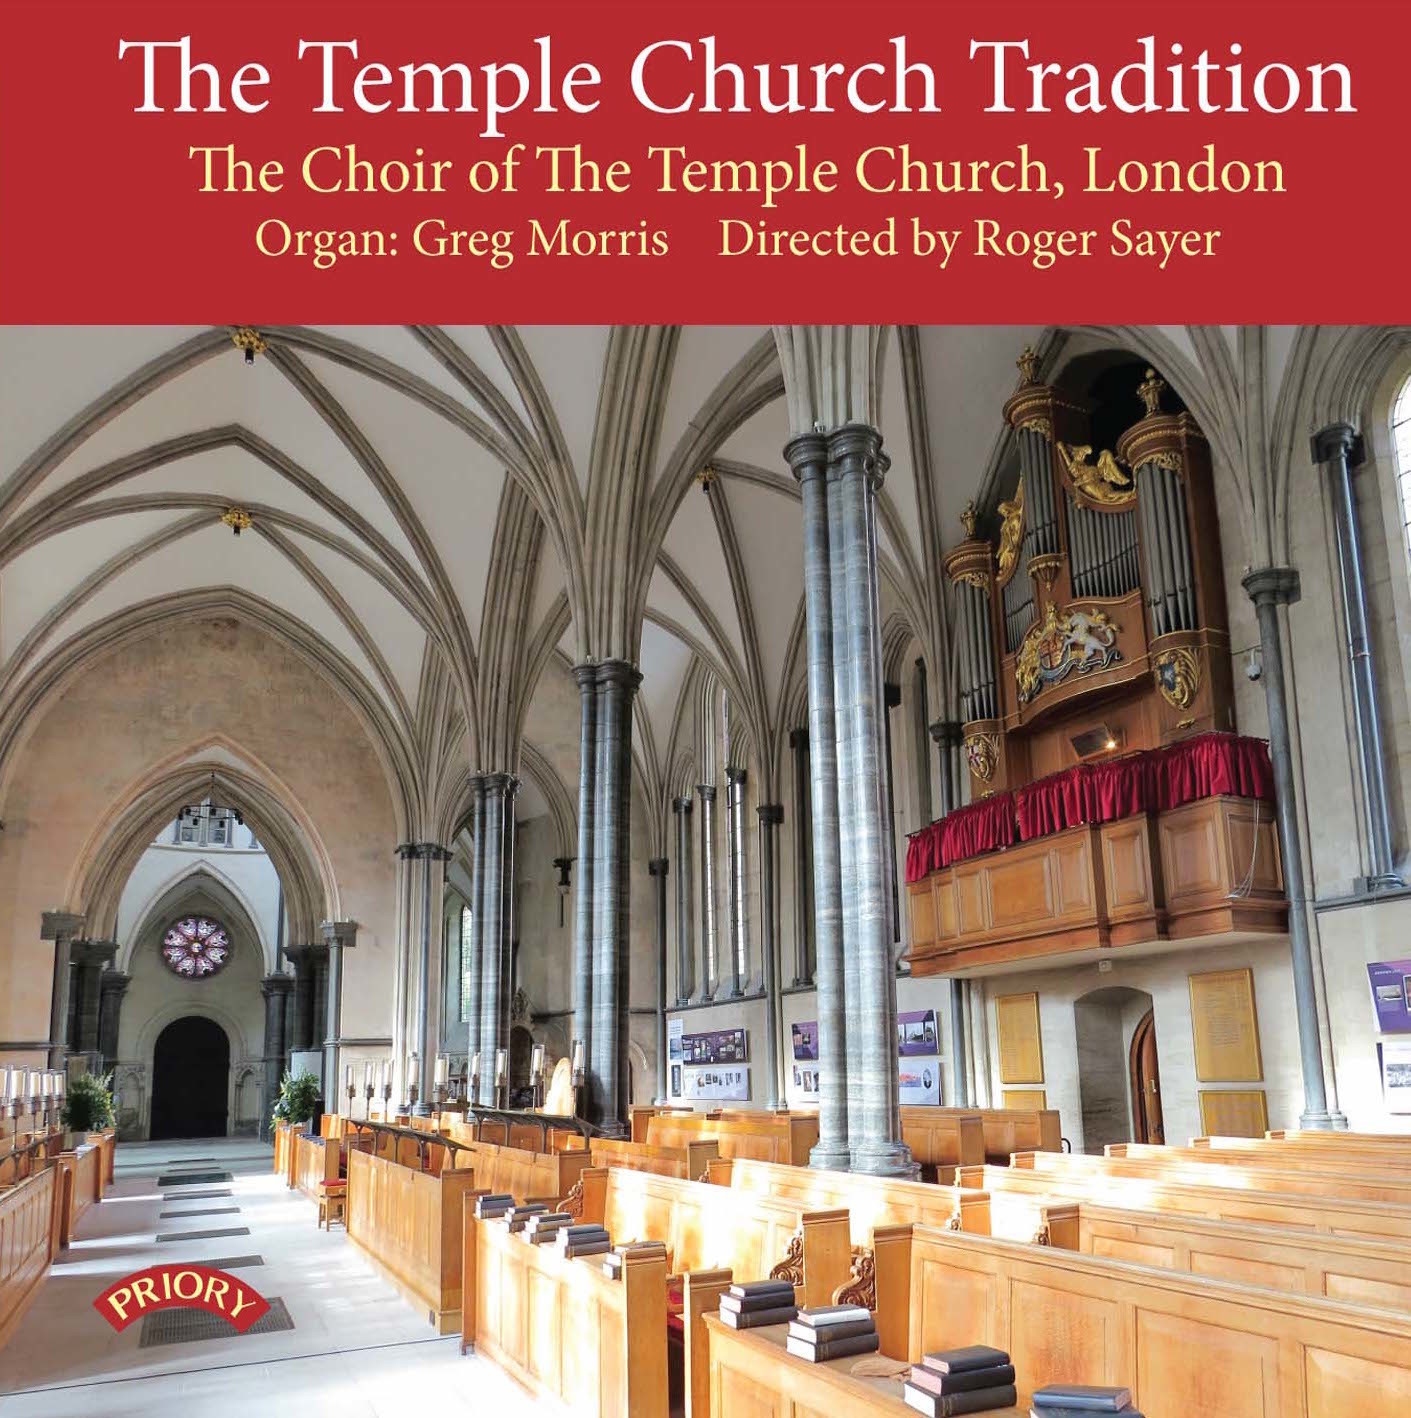 The Temple Church Tradition